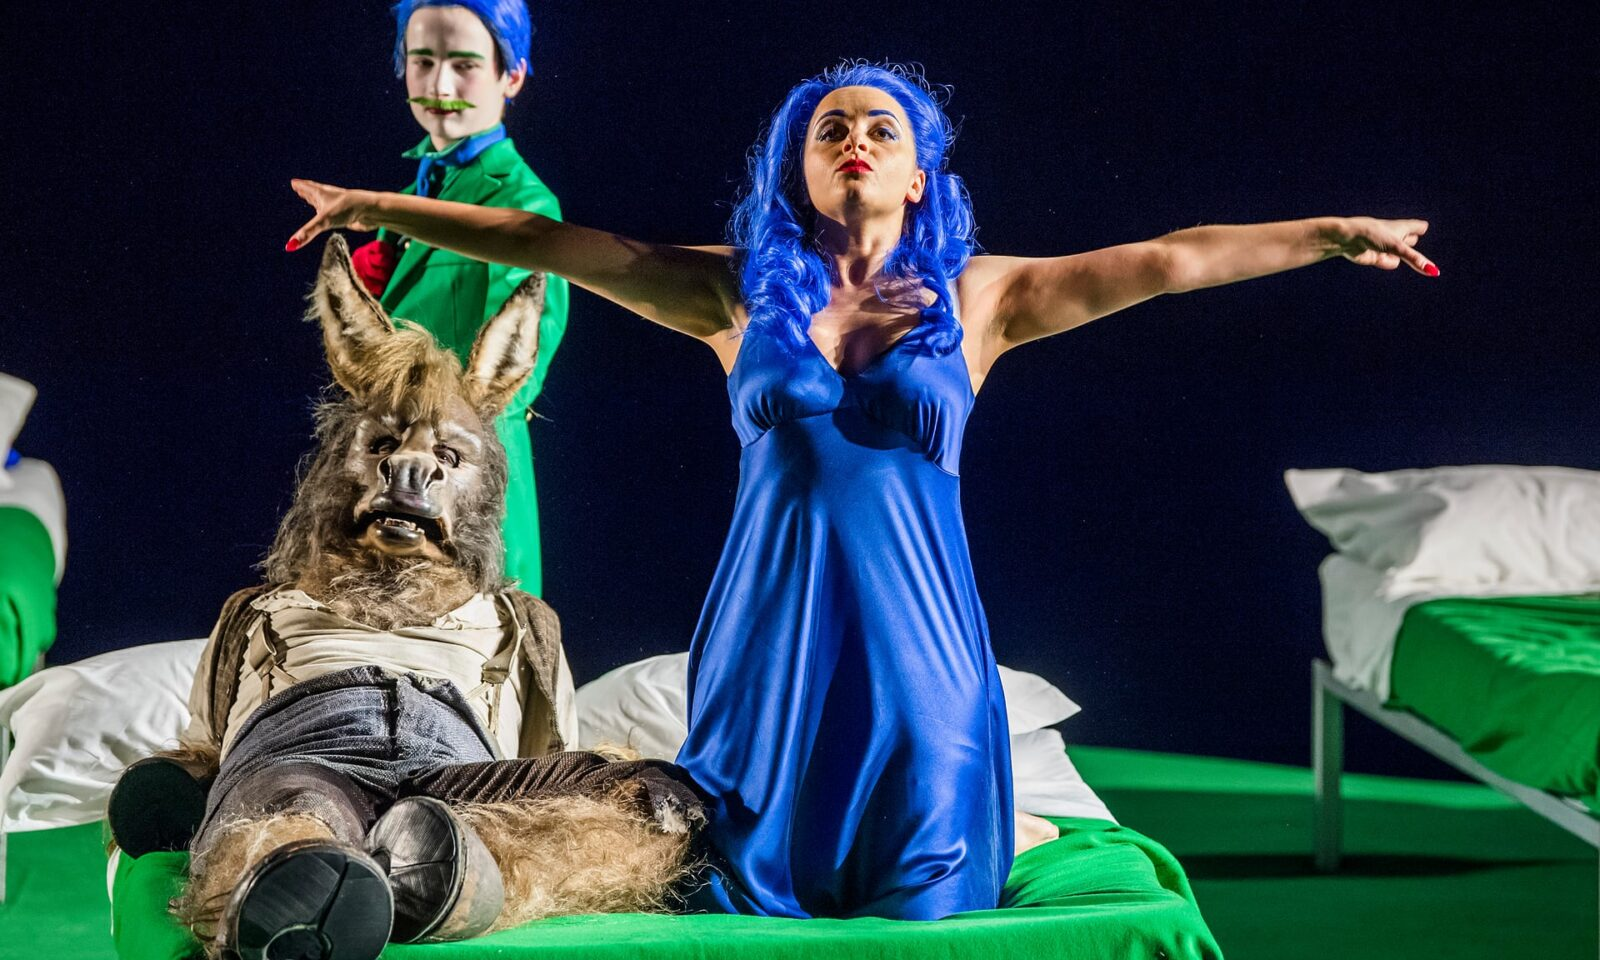 A Midsummer Night's Dream review – Carsen's Classic Staging Makes a Welcome Return